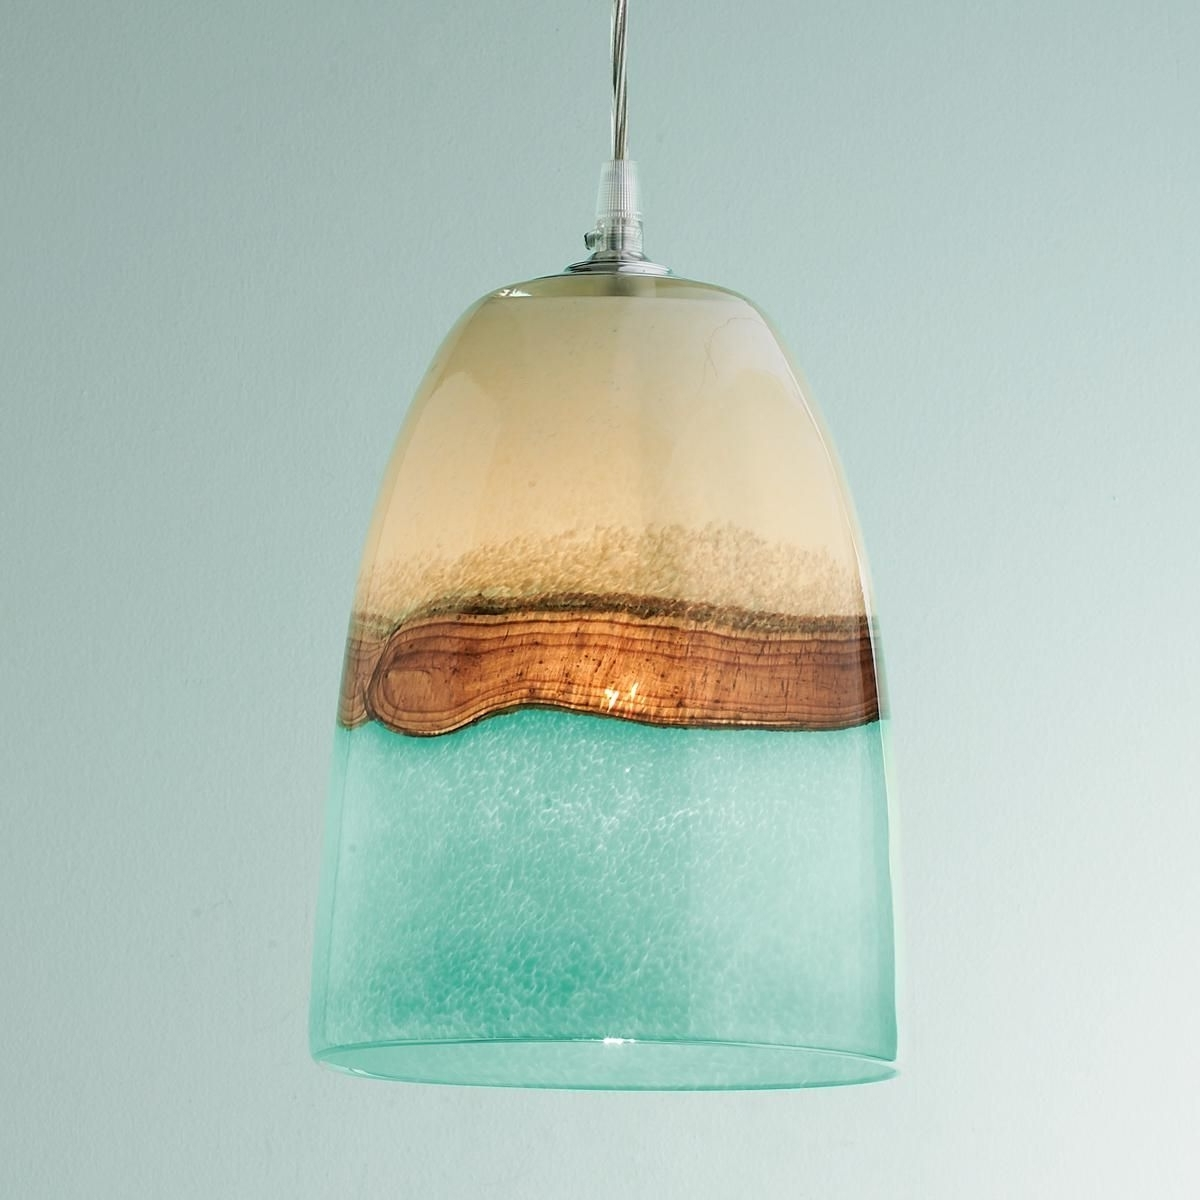 Turquoise Pendant Chandeliers Regarding Latest Strata Art Glass Pendant Light (View 16 of 20)